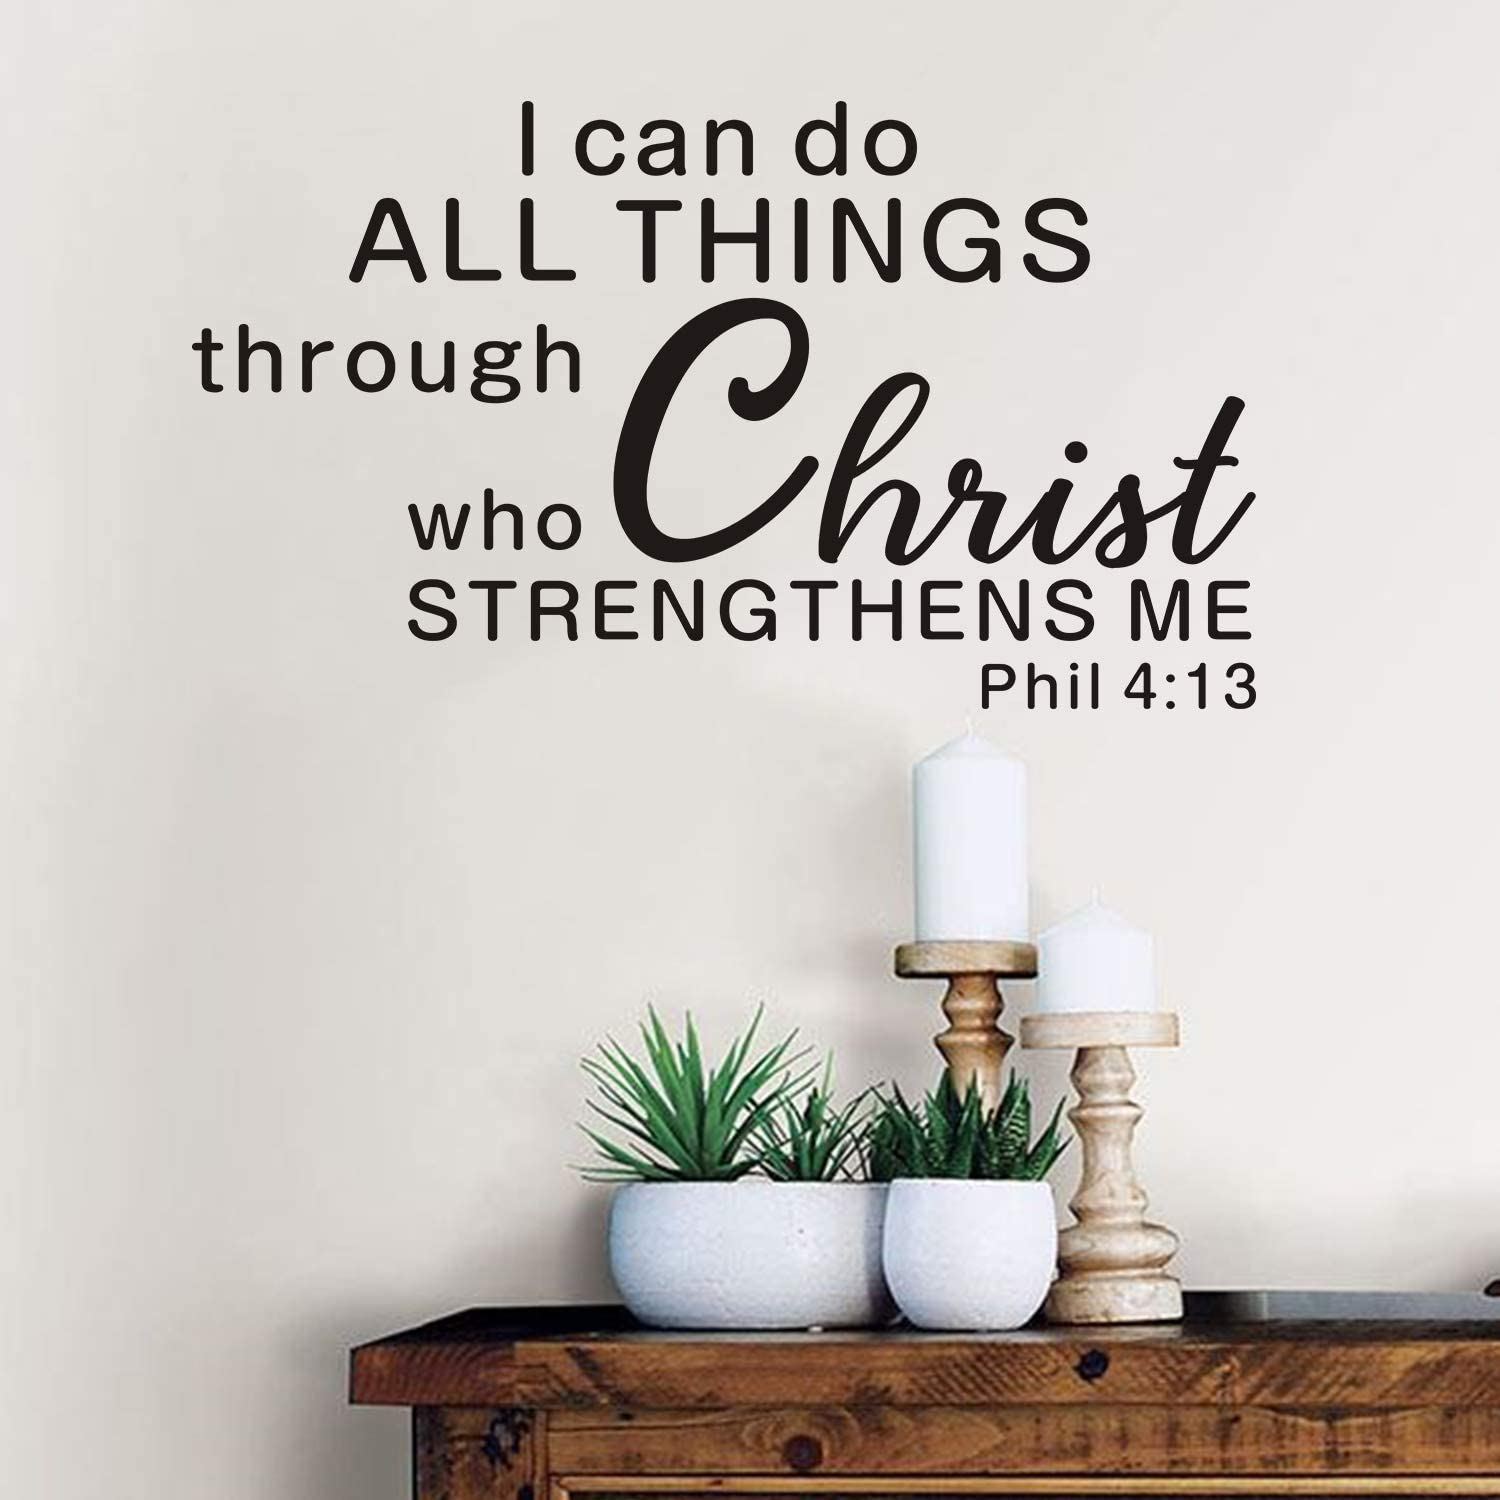 AnFigure Wall Decals for Living Room, Inspirational Wall Decals, Quotes Bible Verse Biblical Church Religious Vinyl Art Home Decor Sticker I Can Do All Things Through Christ Who Strengthens Me 21